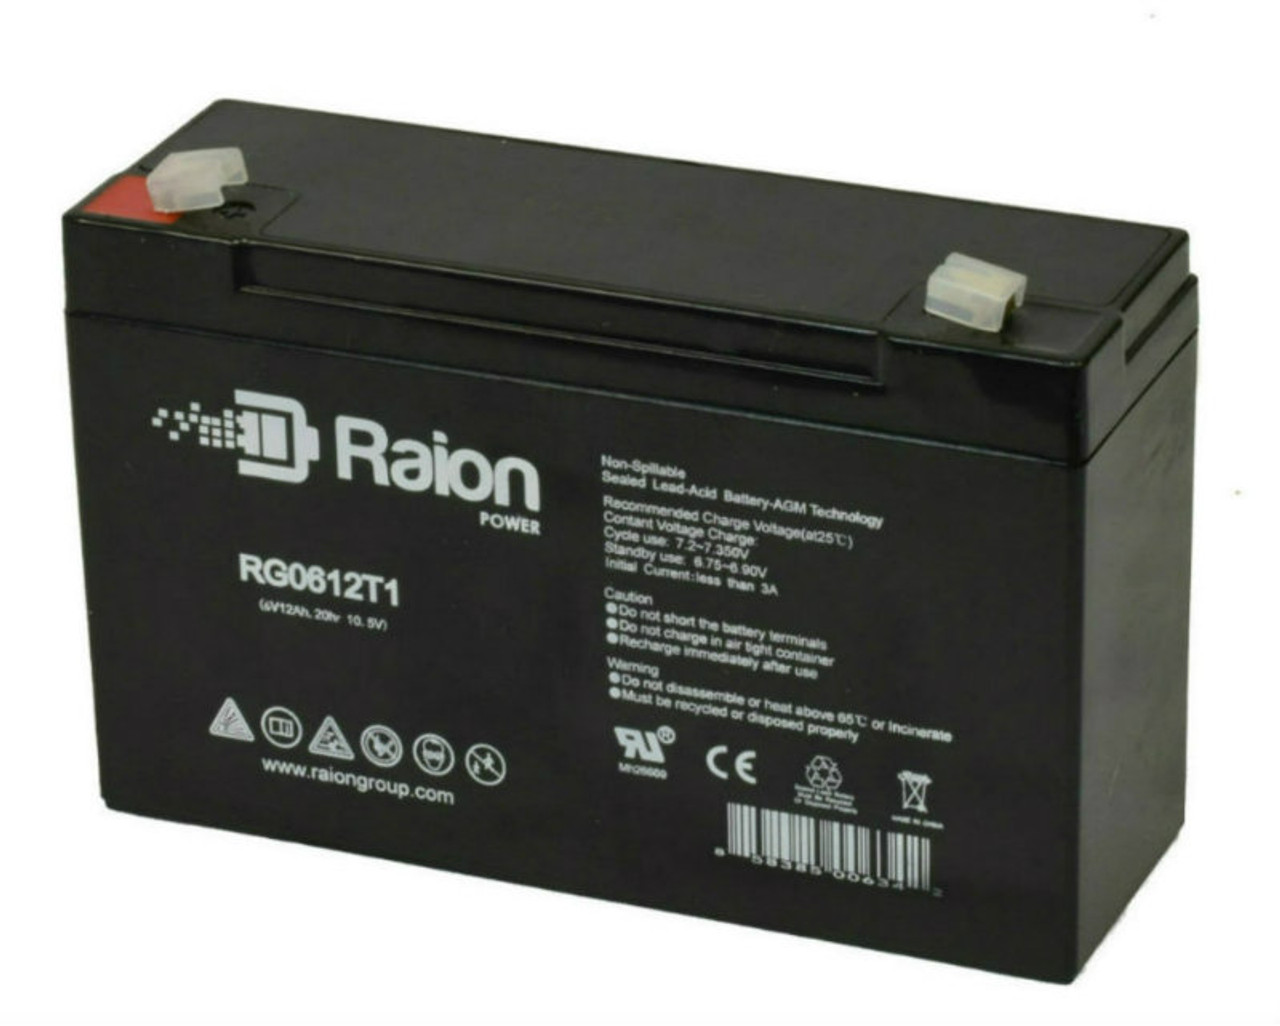 Raion Power RG06120T1 Replacement Battery Pack for Sure-Lites 12UMB410 emergency light